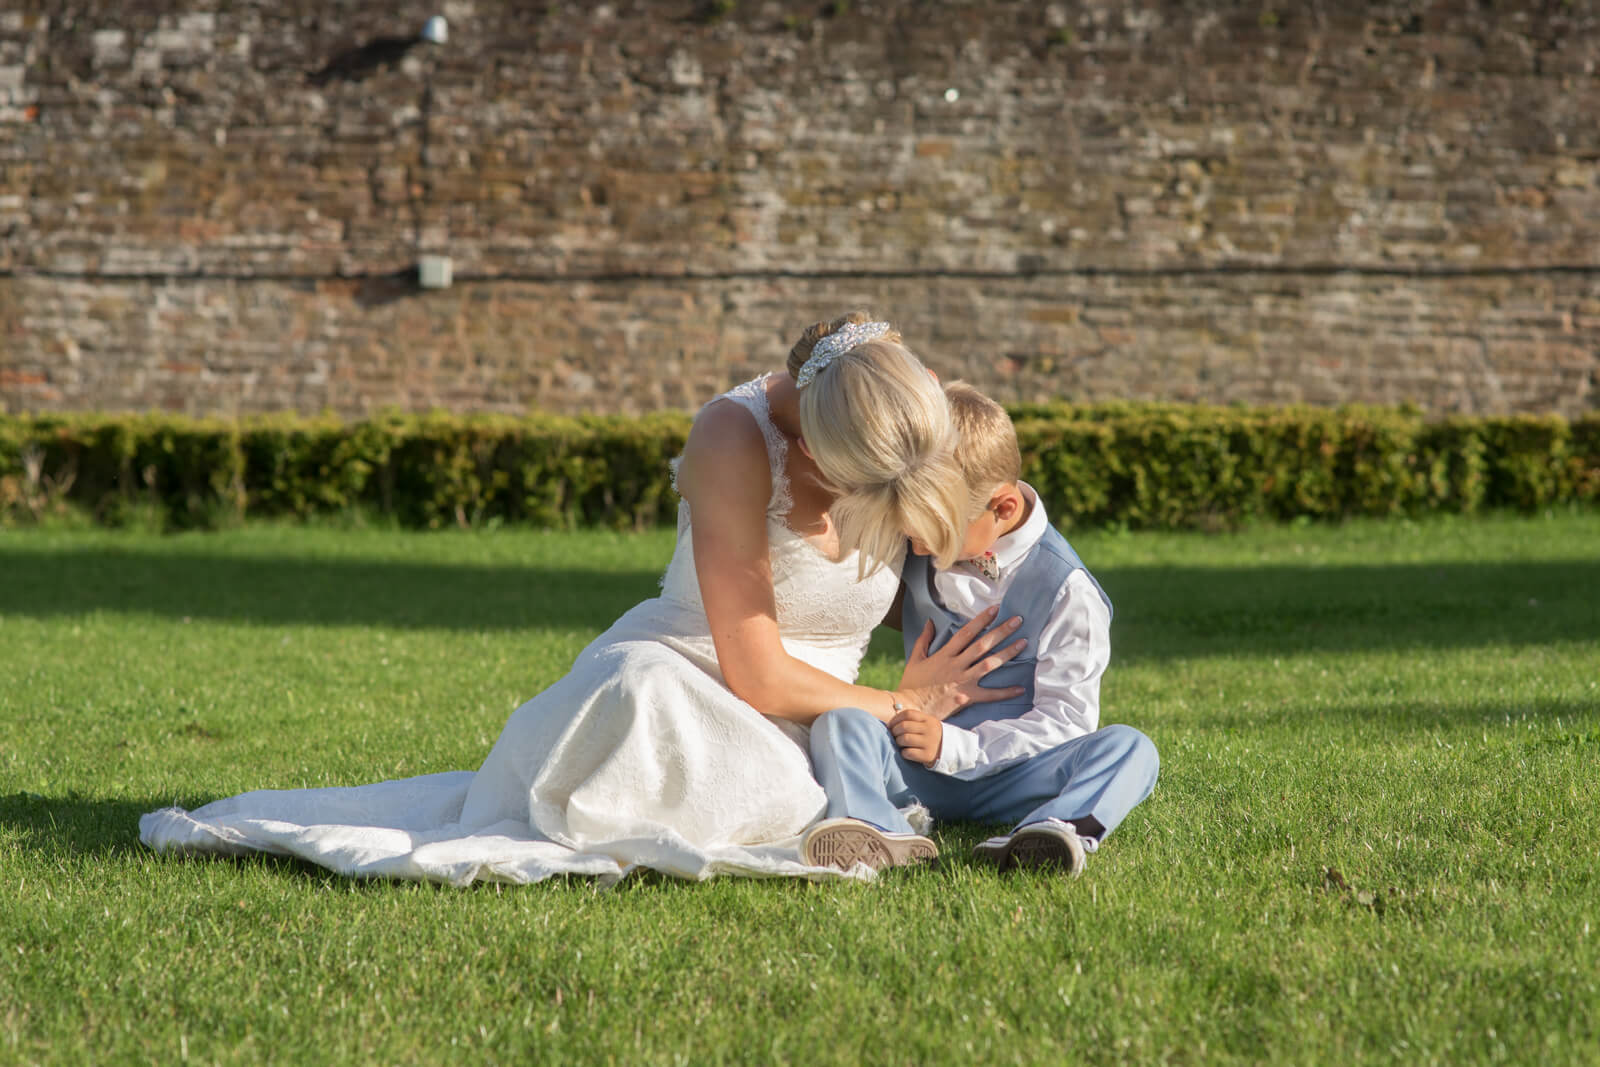 Bride and son share a moment sitting on a lawn